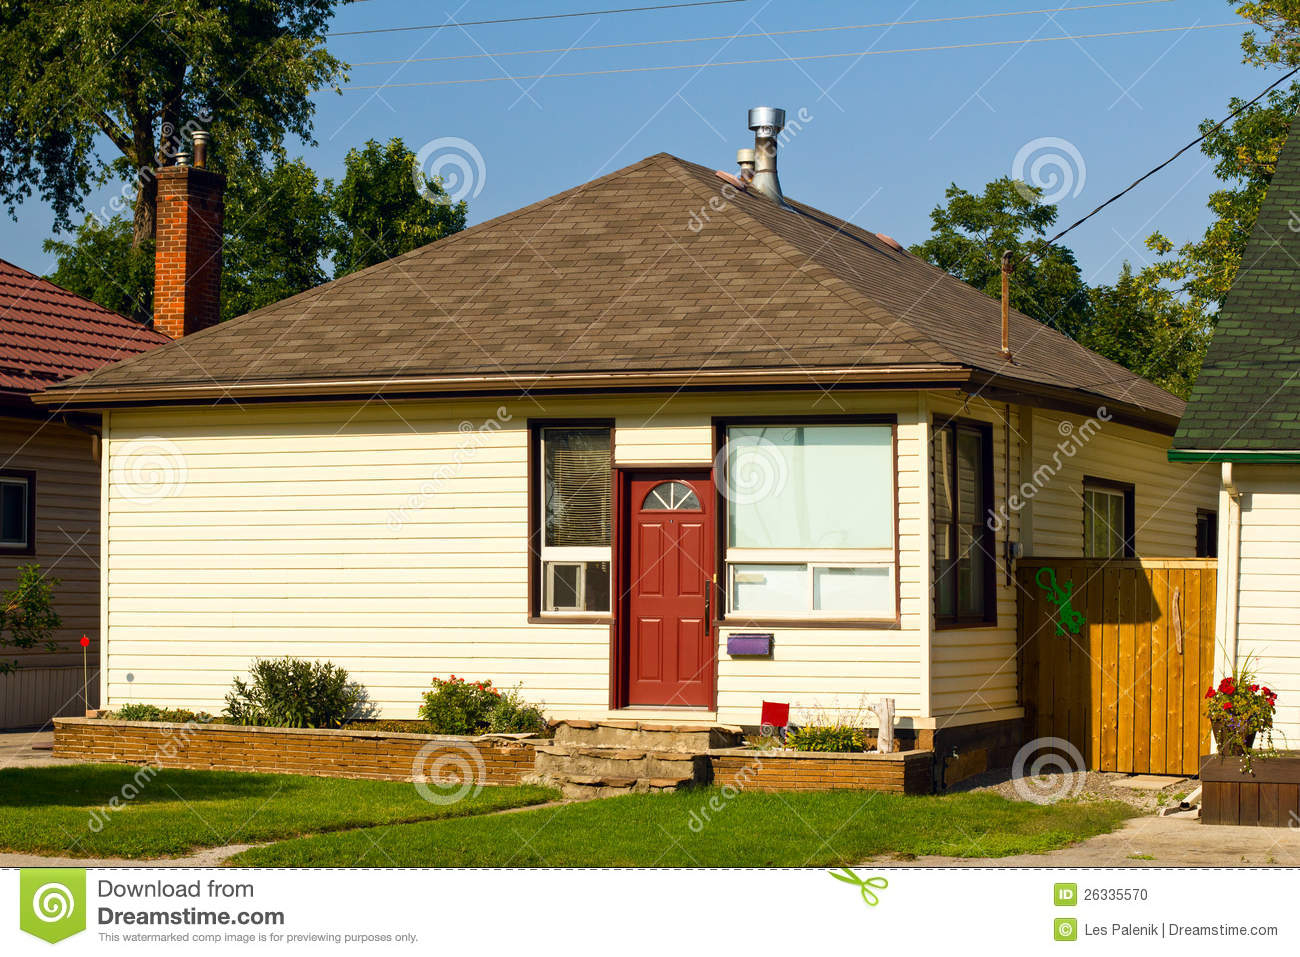 small bungalow stock photo image 26335570